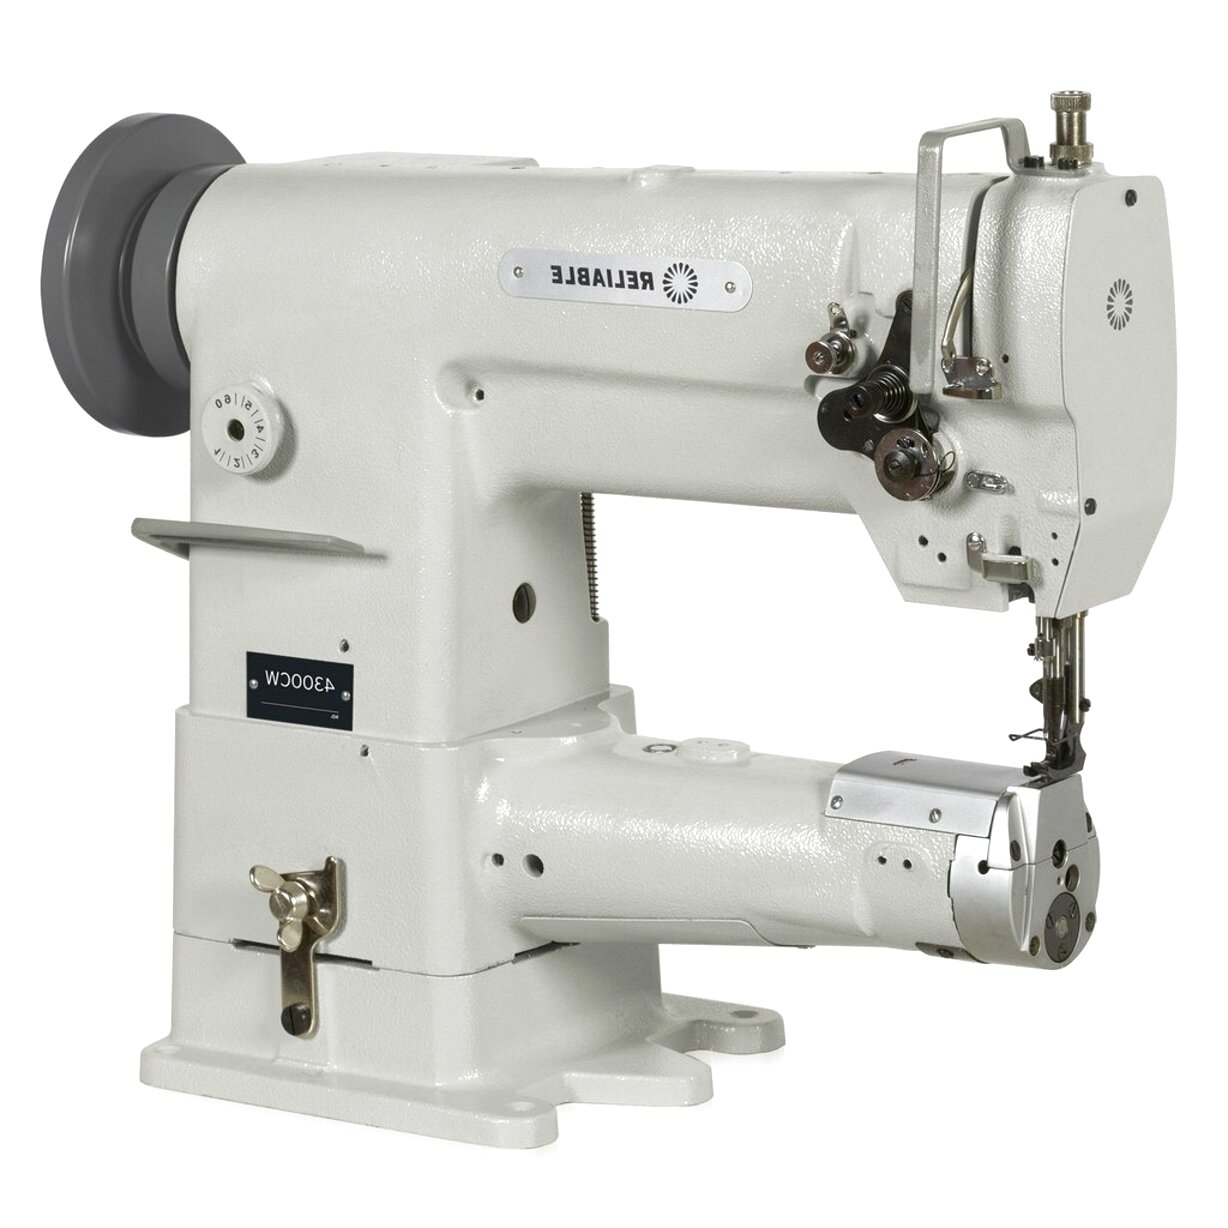 Cylinder Sewing Machine for sale in Canada